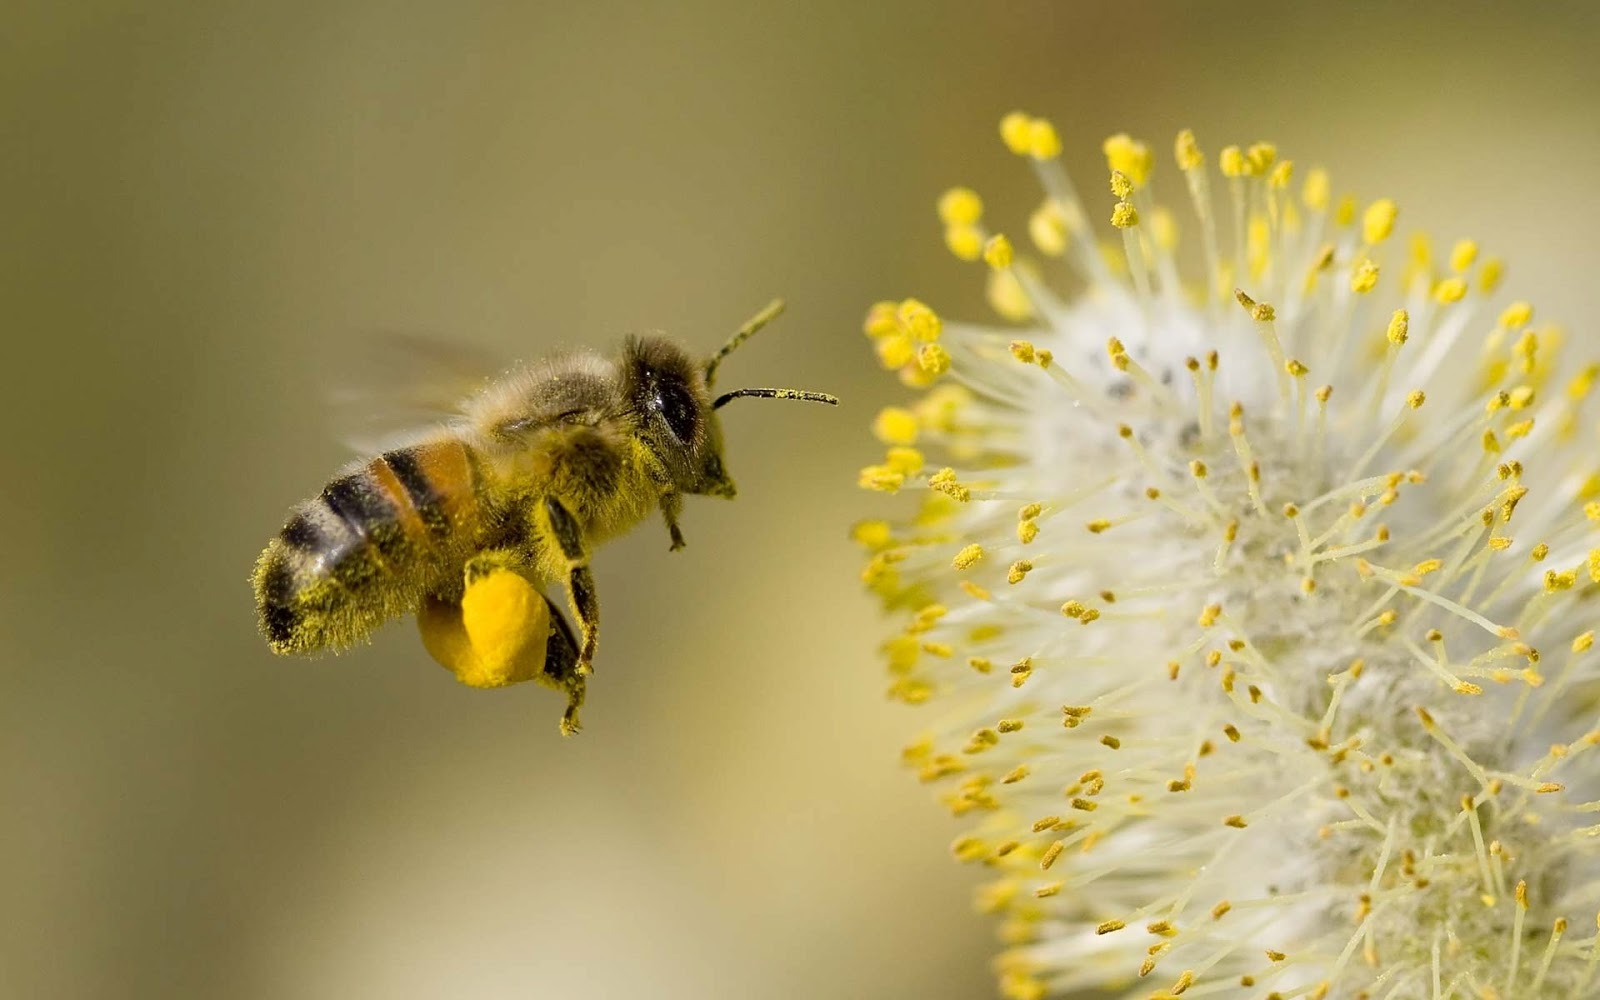 Honey Bees Wallpapers For Android Top Level Beautiful Wallpaper 1600x1000